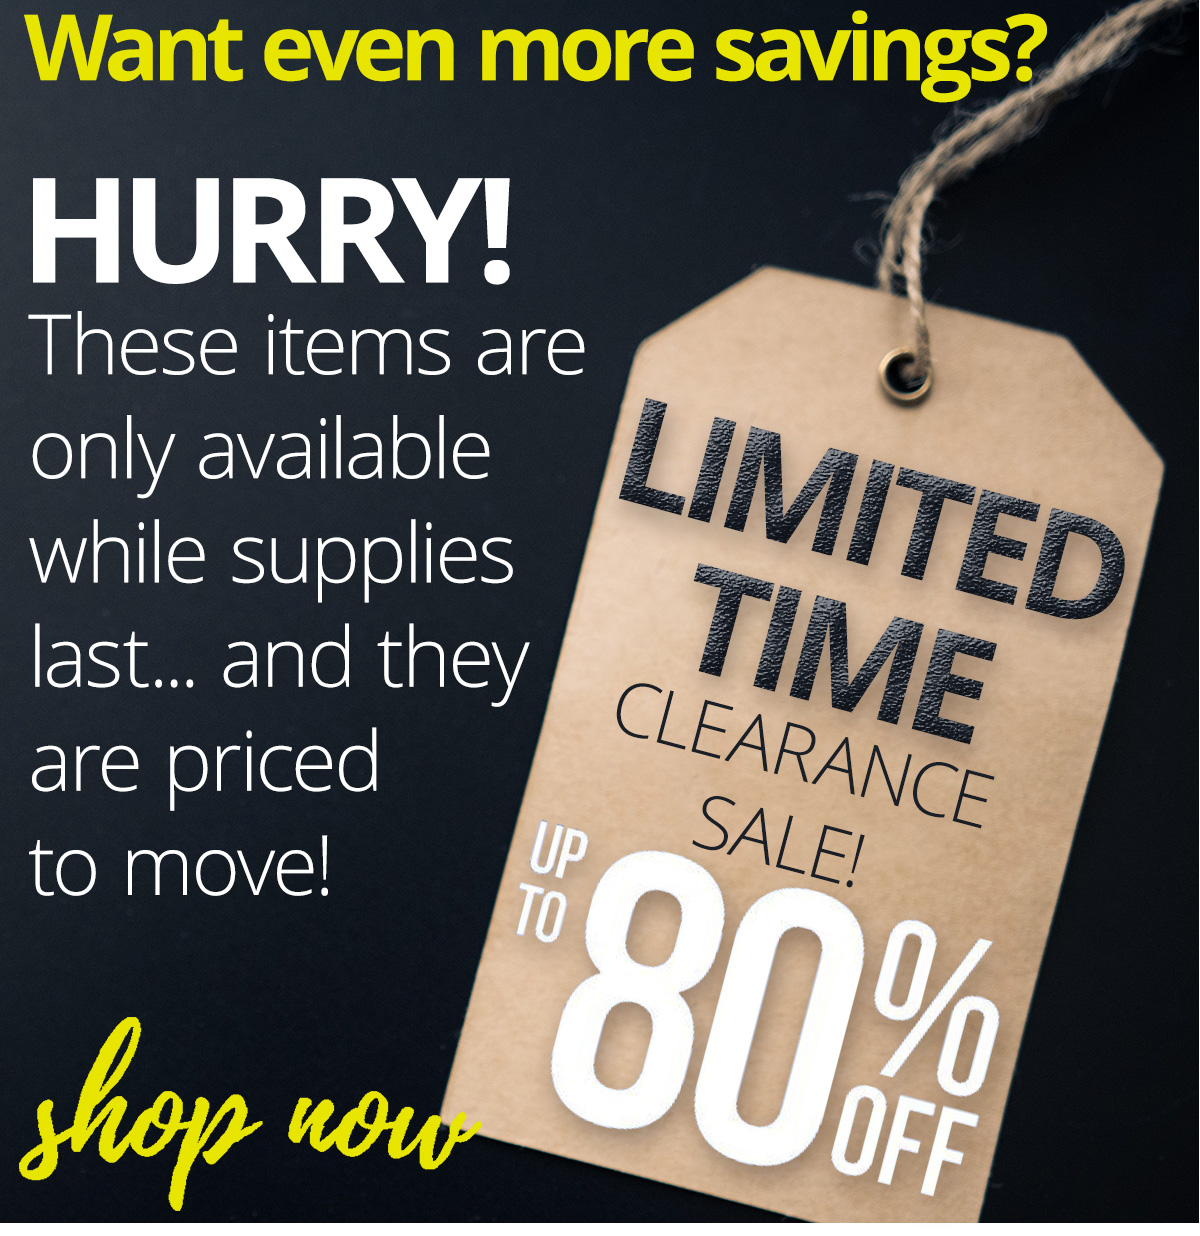 Up to 80% off Clearance items - Limited supplies won't last long